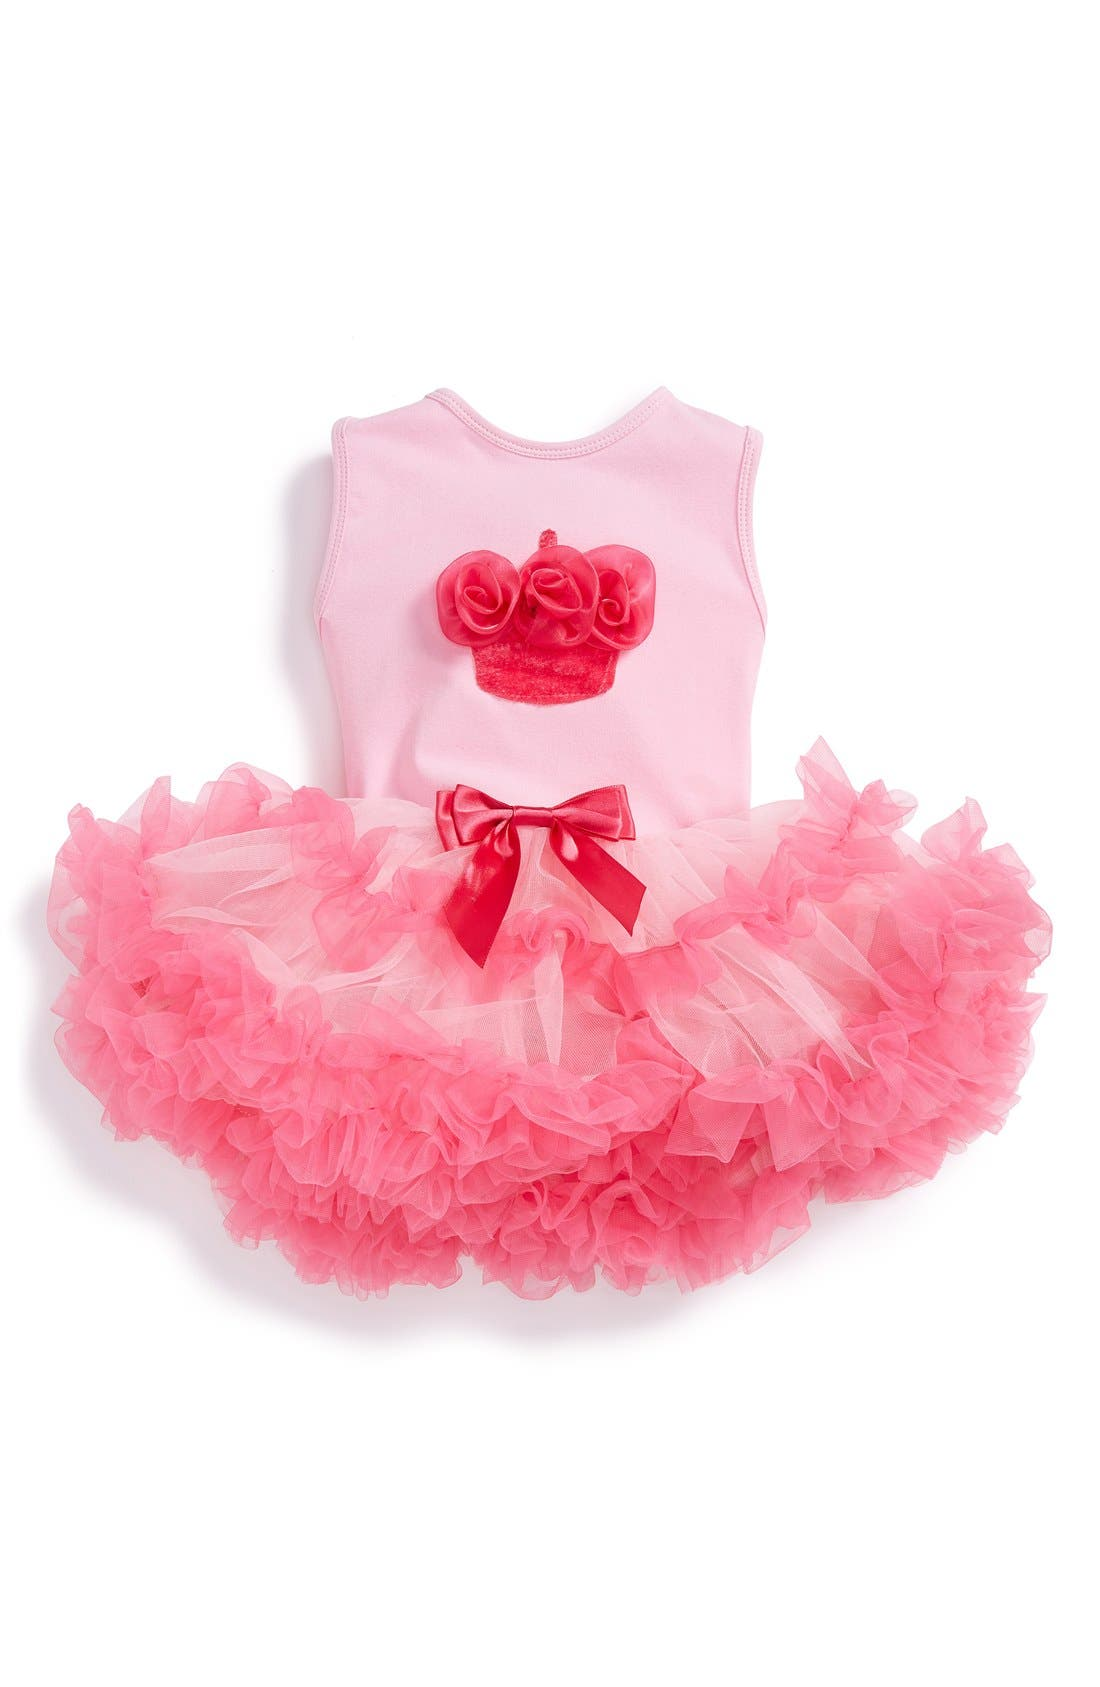 'Birthday' Sleeveless Tutu Dress,                         Main,                         color, PINK